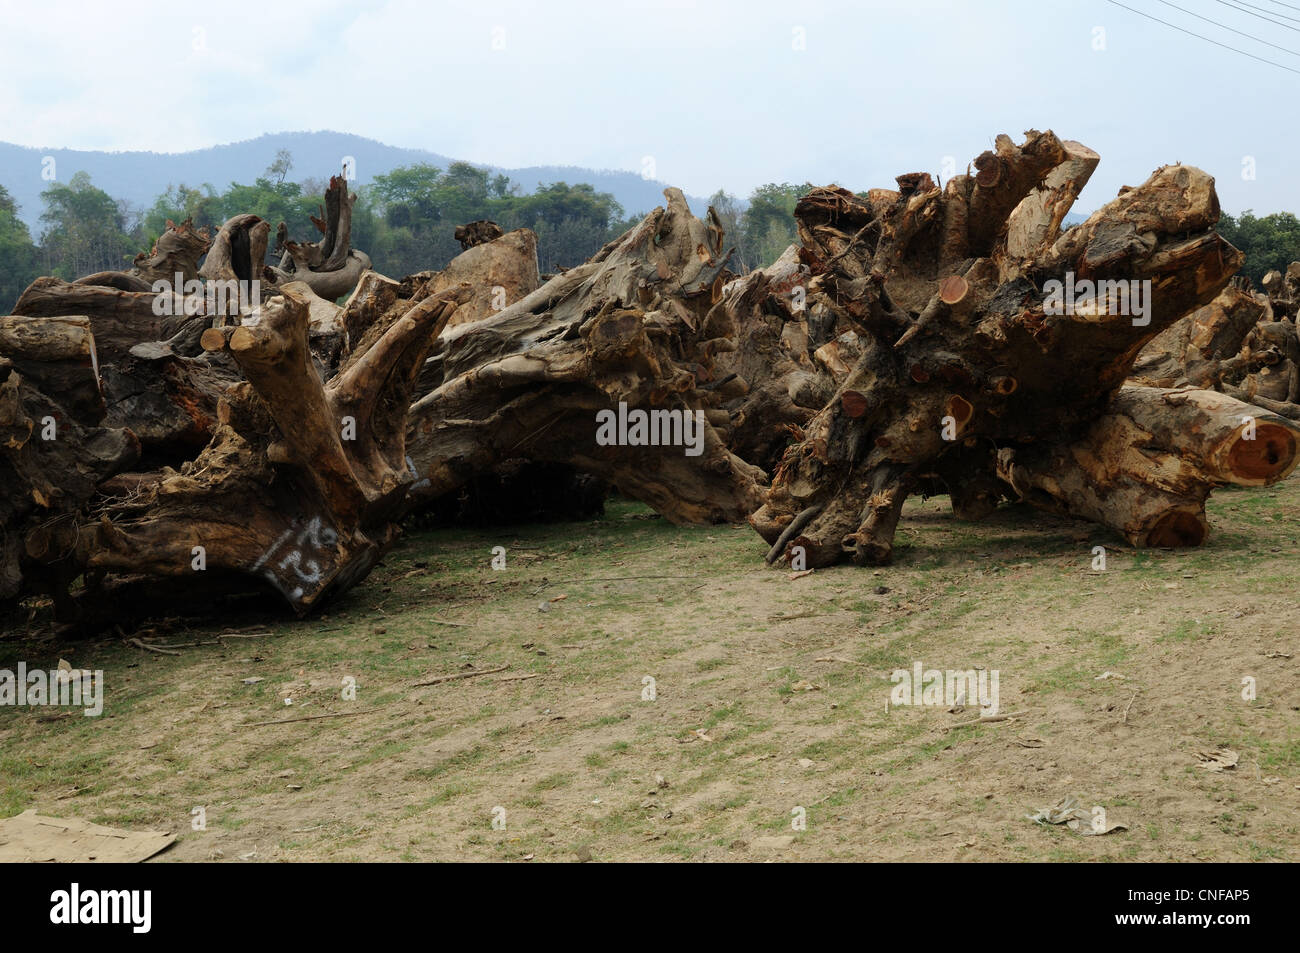 Rosewood Tree roots being exported to China from Laos for carving - Stock Image